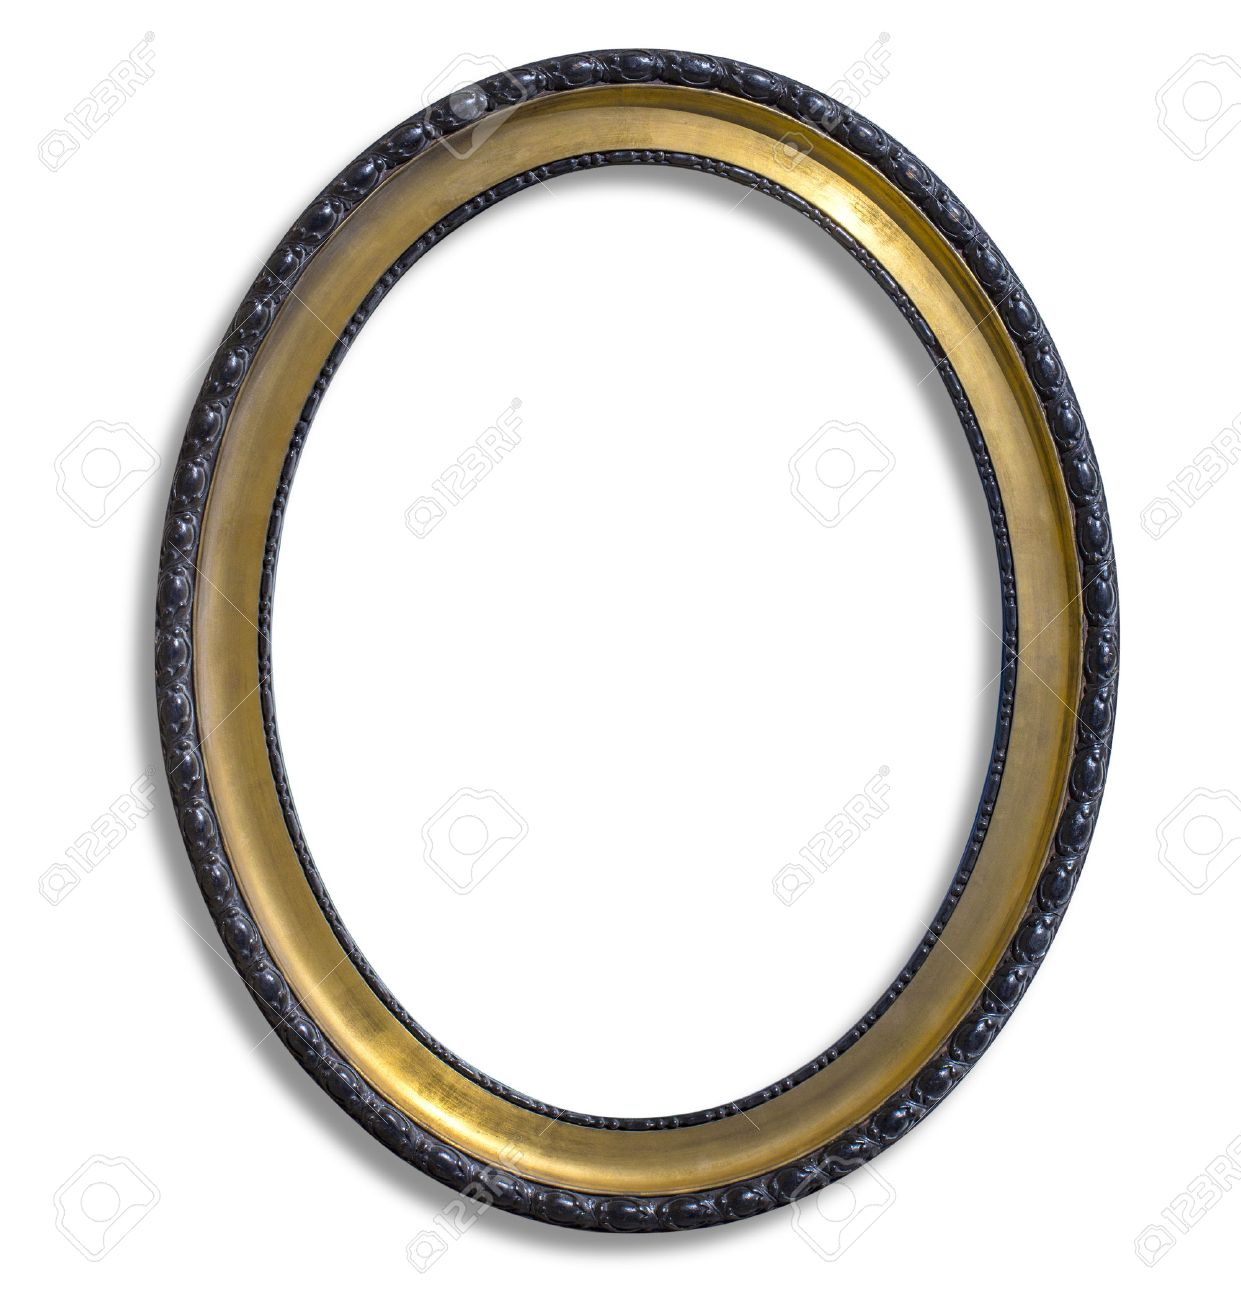 oval gold picture frame. Isolated over white with clipping path - 49131757